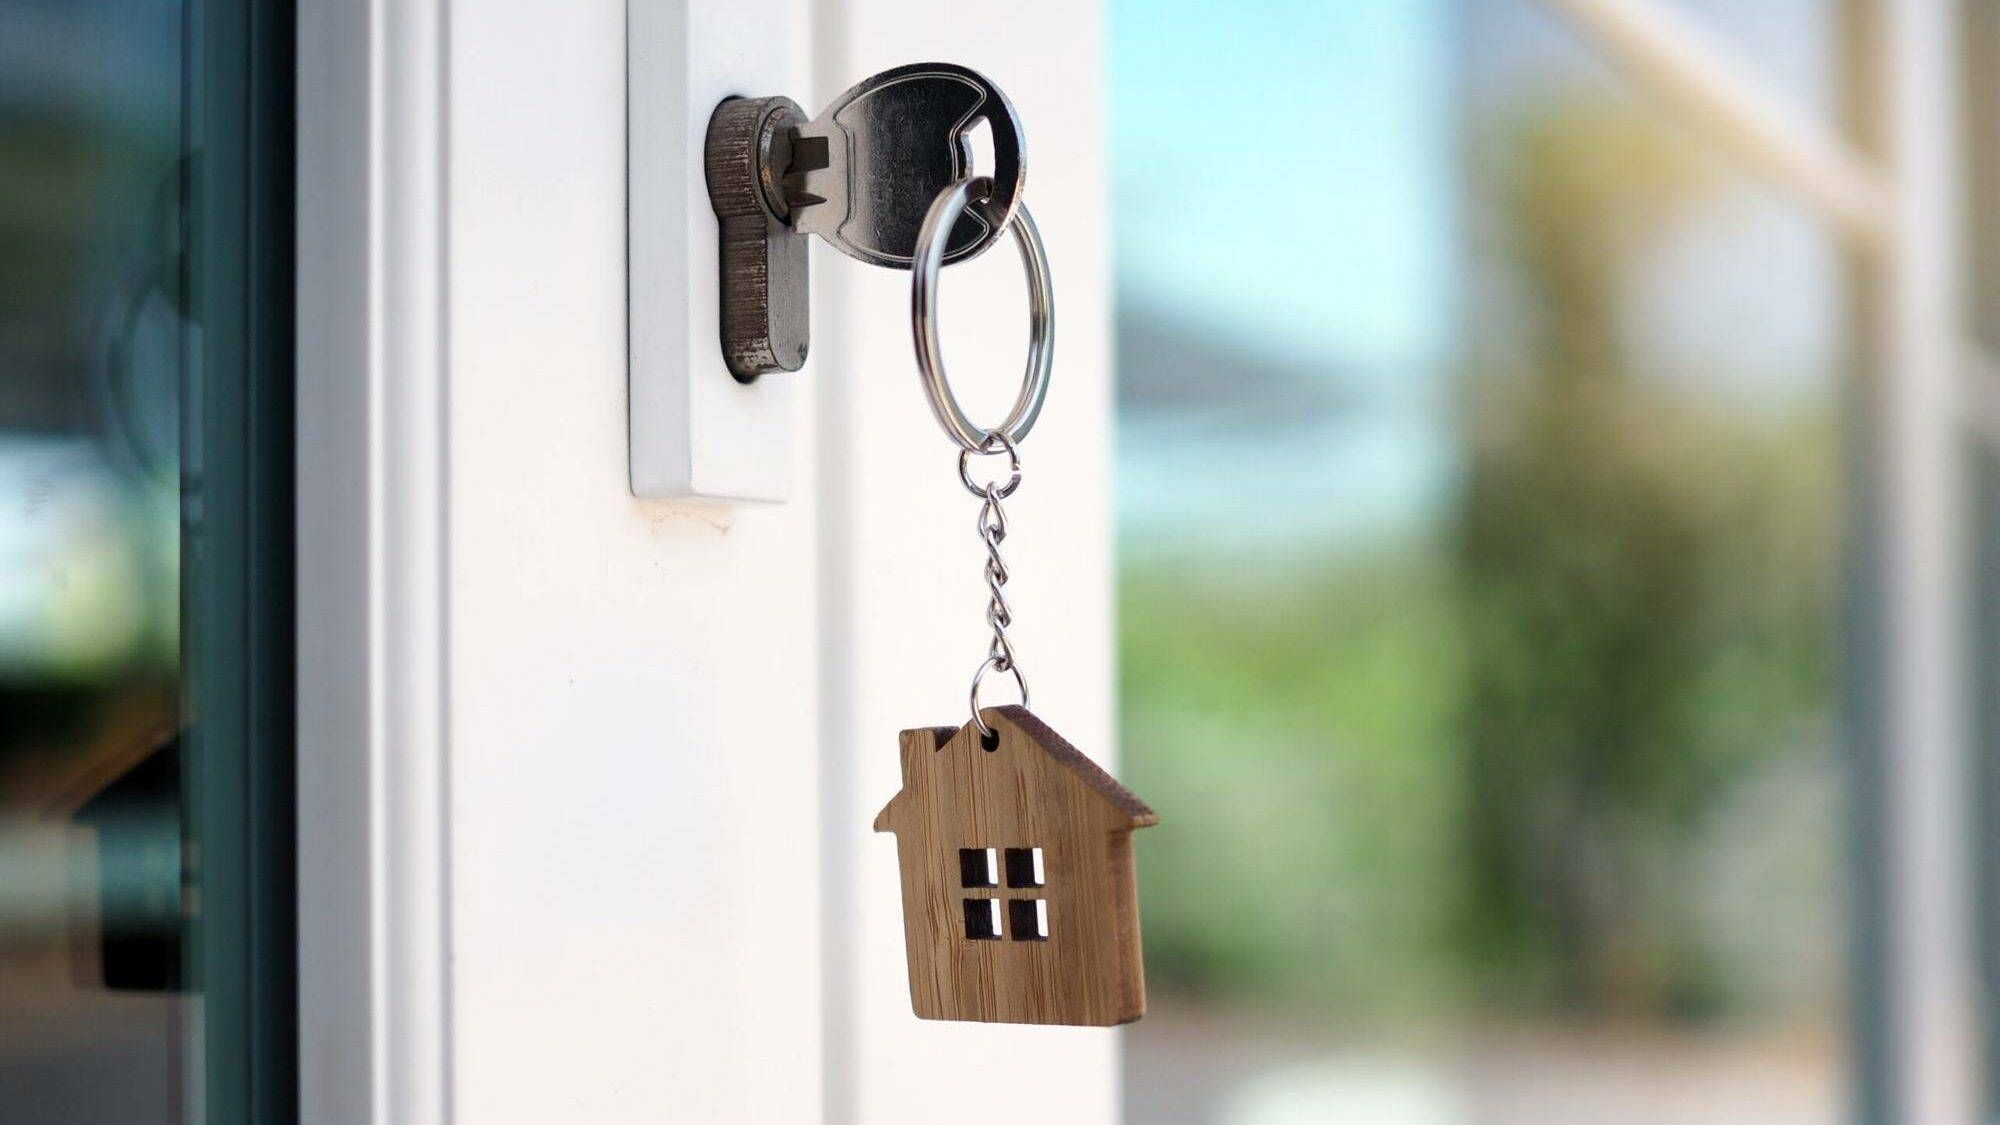 The house key for unlocking a new house is plugged into the door, Rewire, homebuyers, PBS